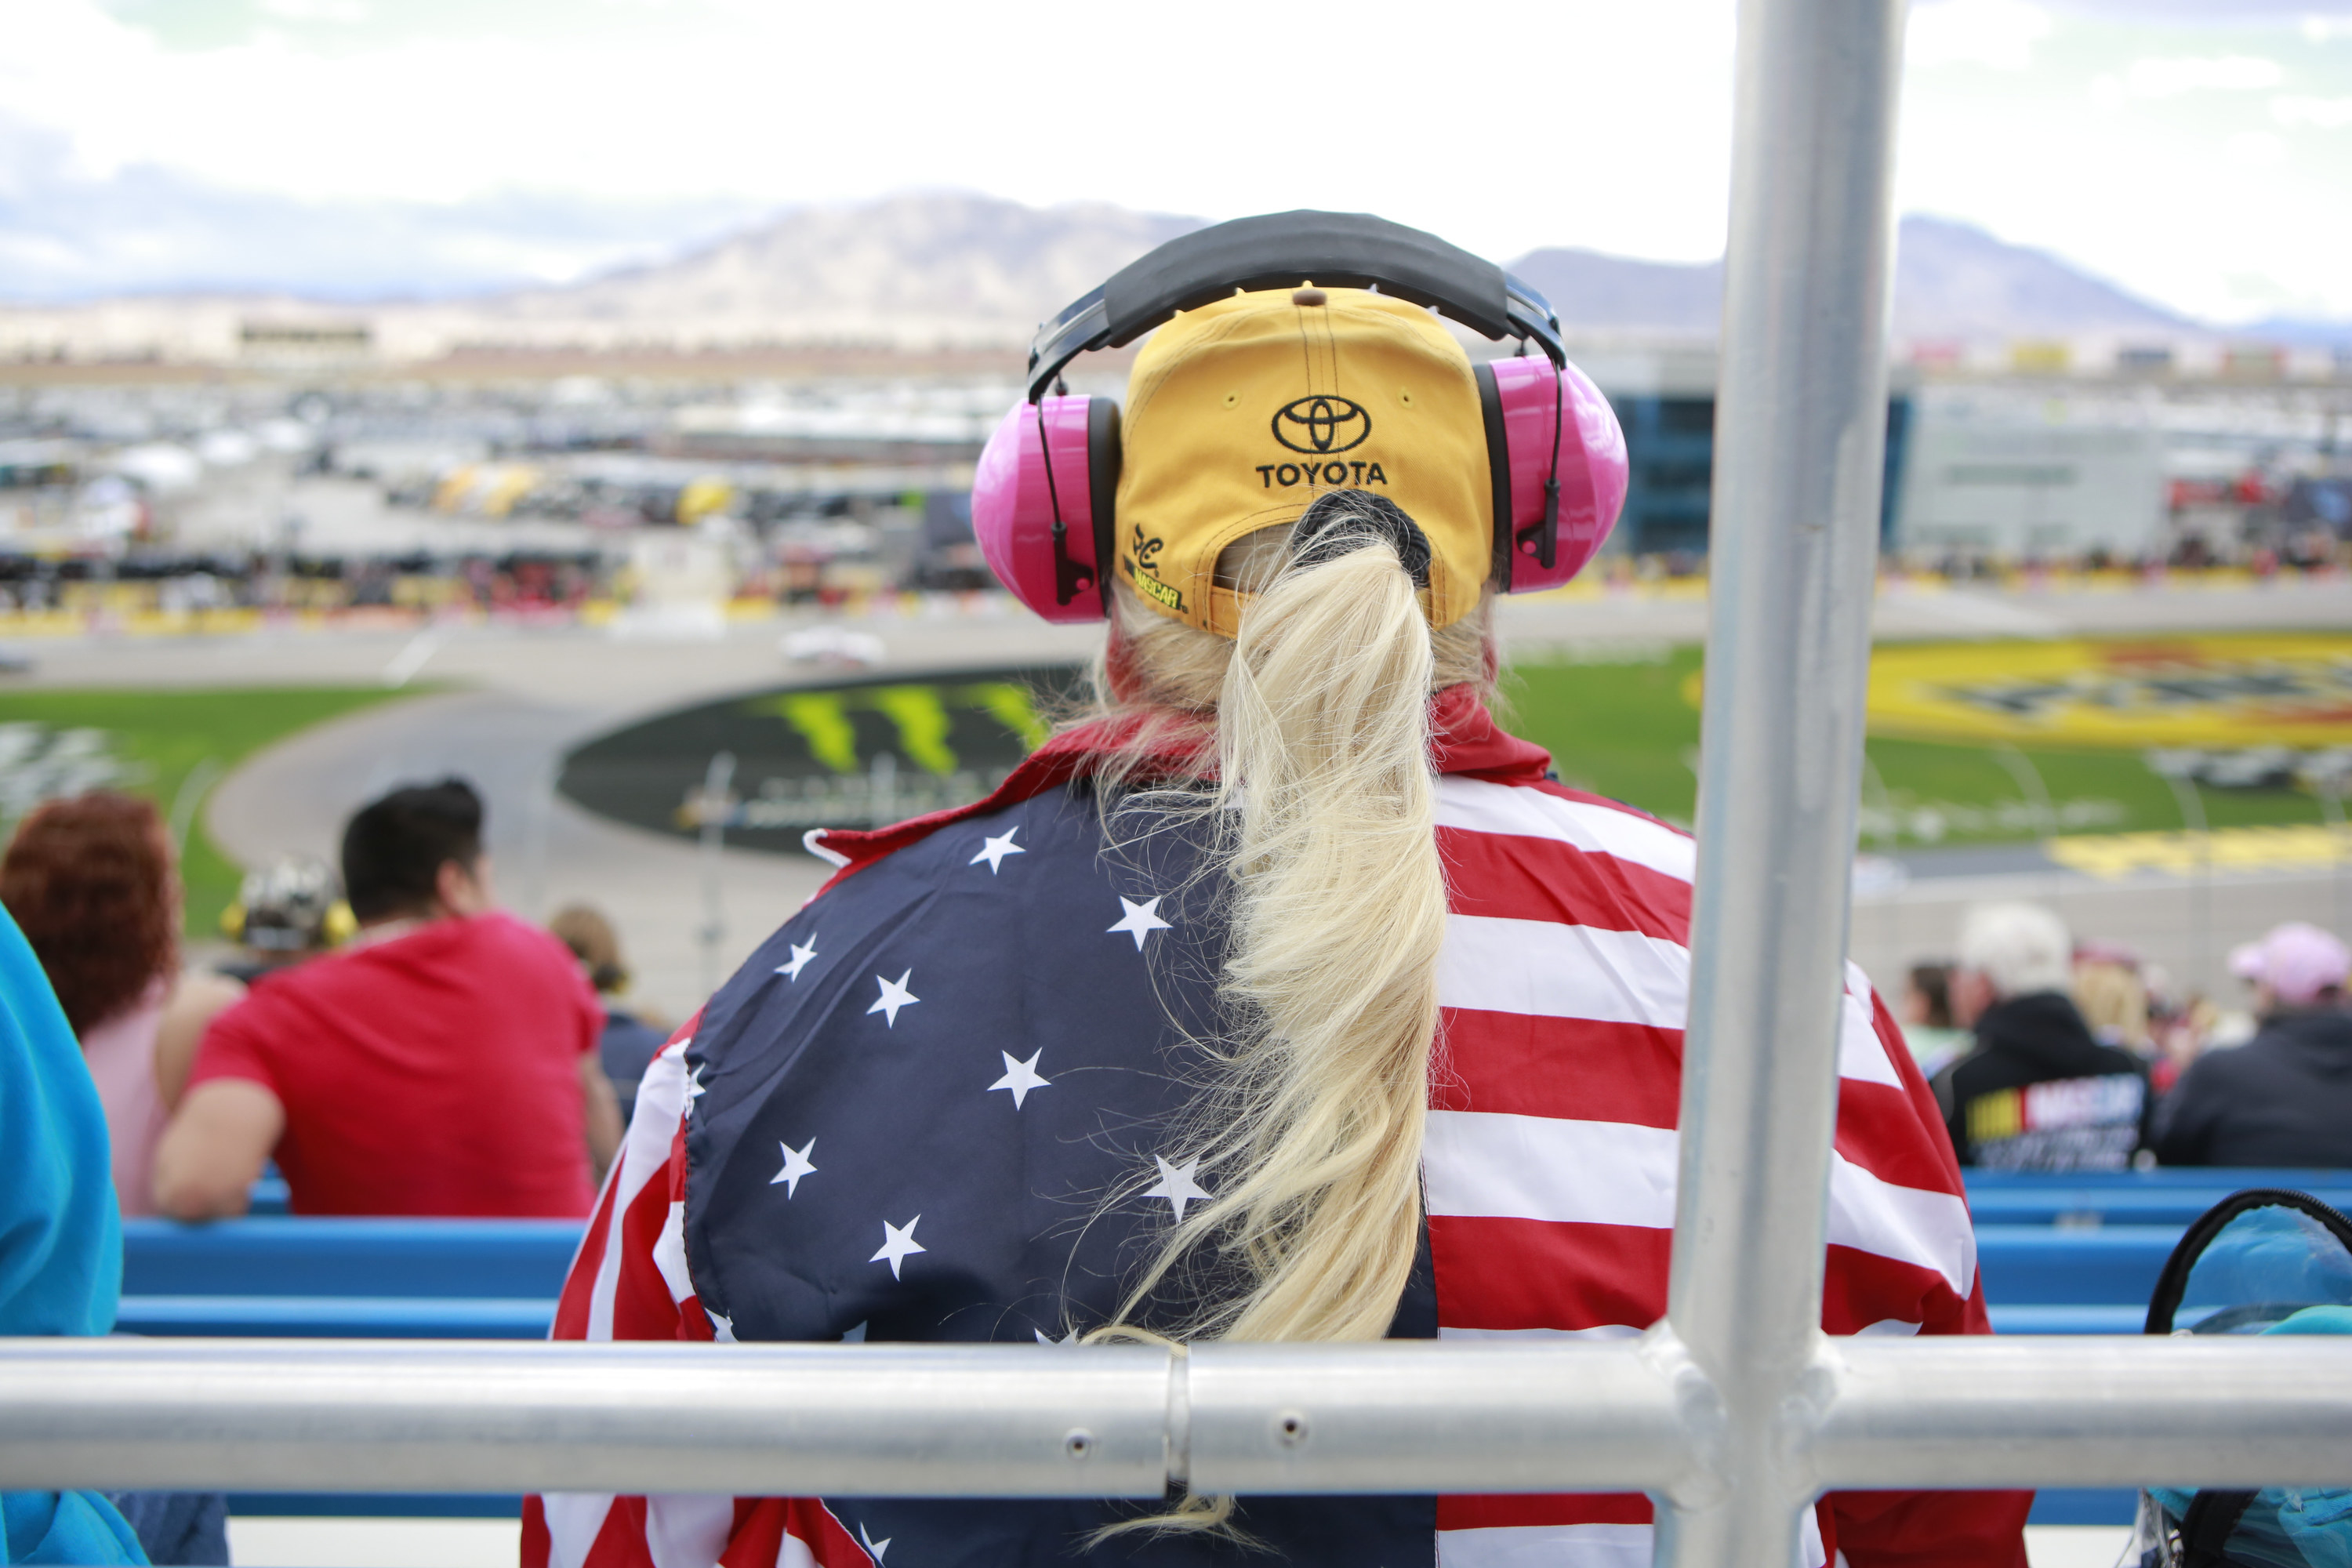 A person wearing an American flag shirt, Toyota cap, and large headphones sits with their back toward the camera